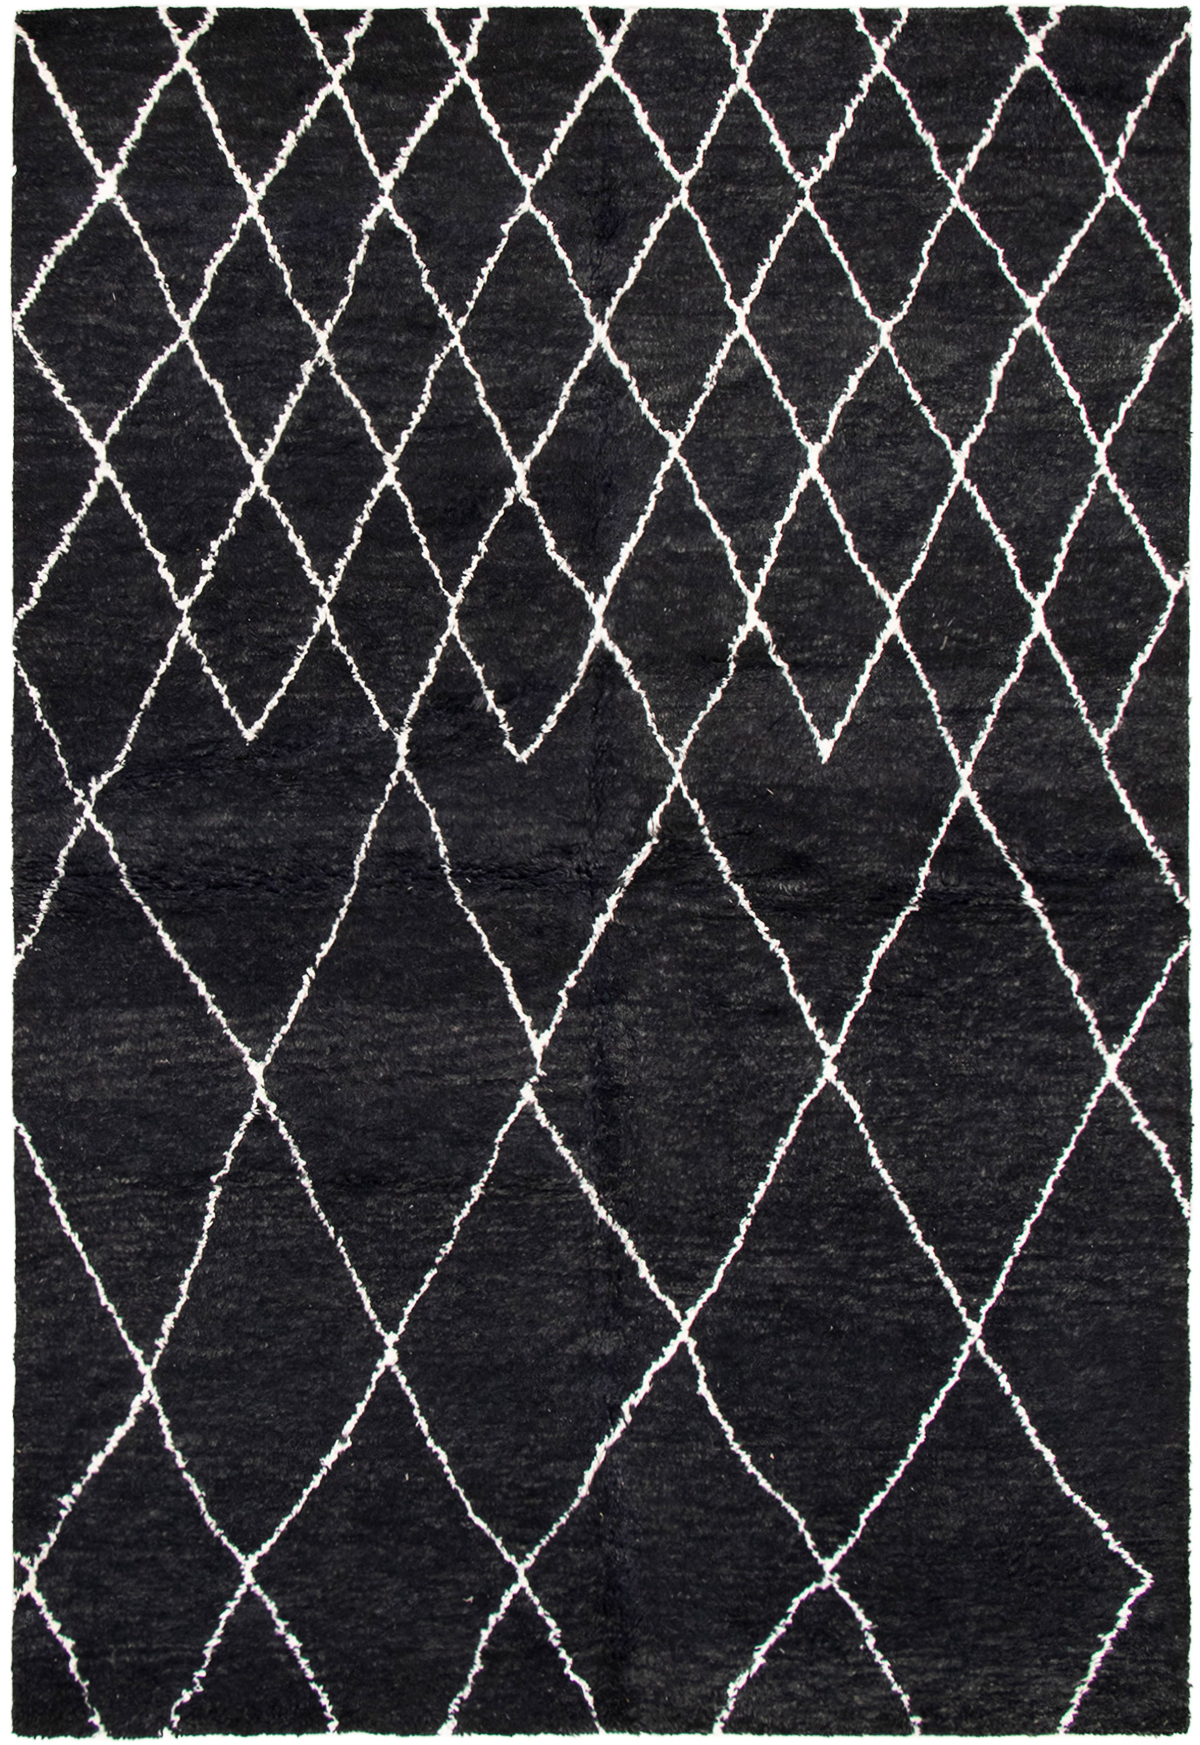 """Hand-knotted Arlequin Black Wool Rug 6'0"""" x 9'0""""  Size: 6'0"""" x 9'0"""""""